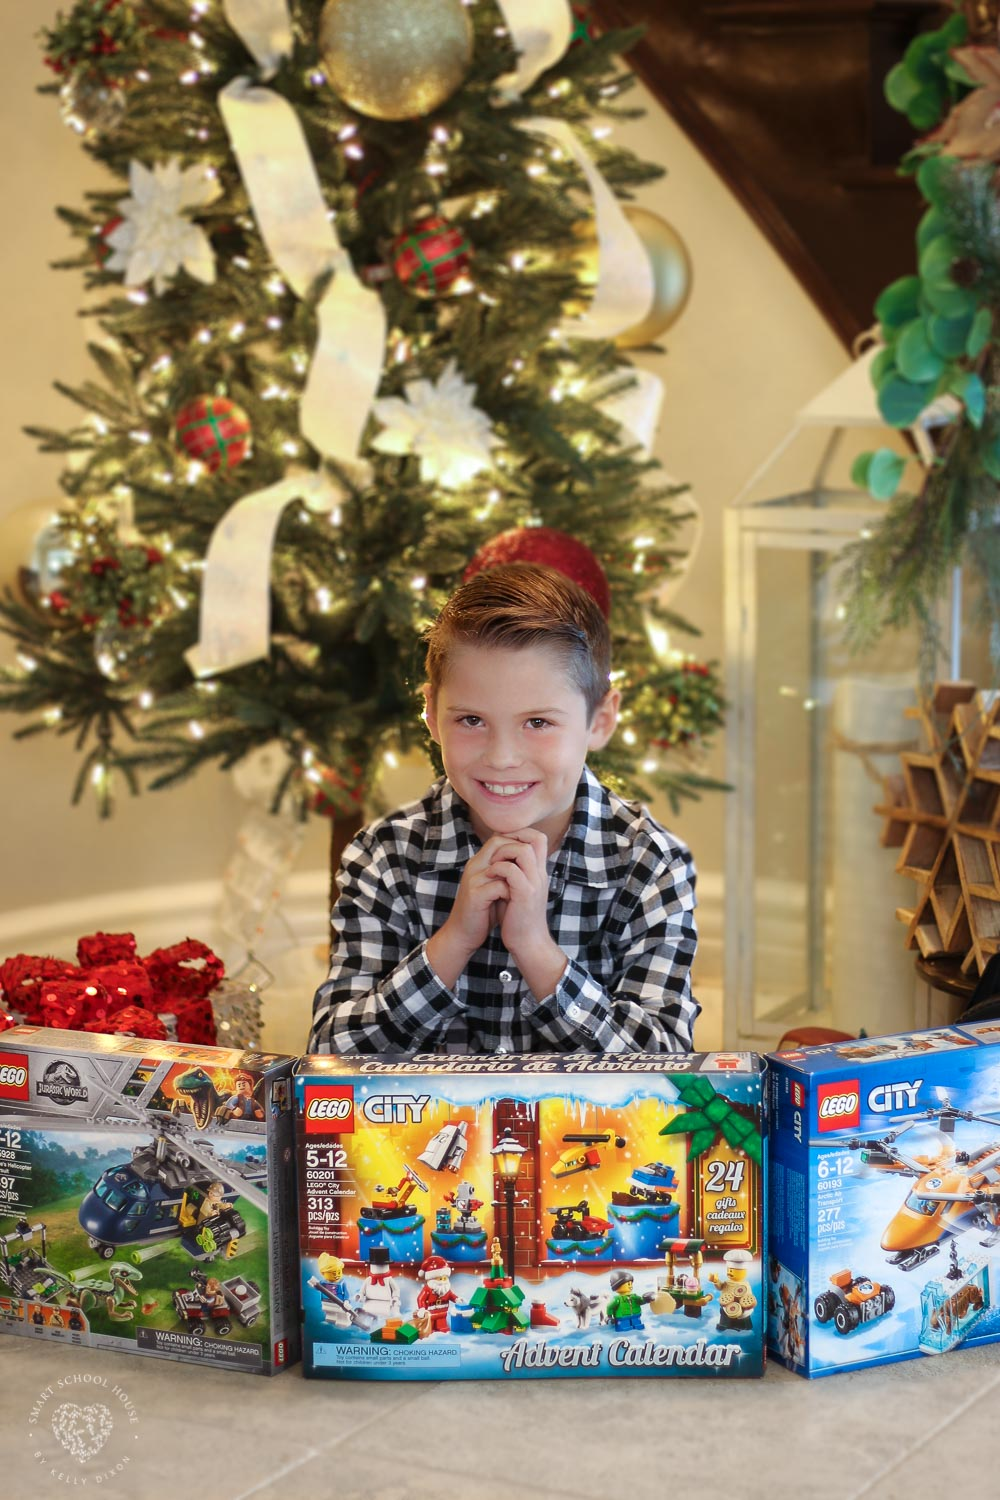 LEGO sets from Kohl's this Christmas! #KohlsToys #KohlsFinds #AD